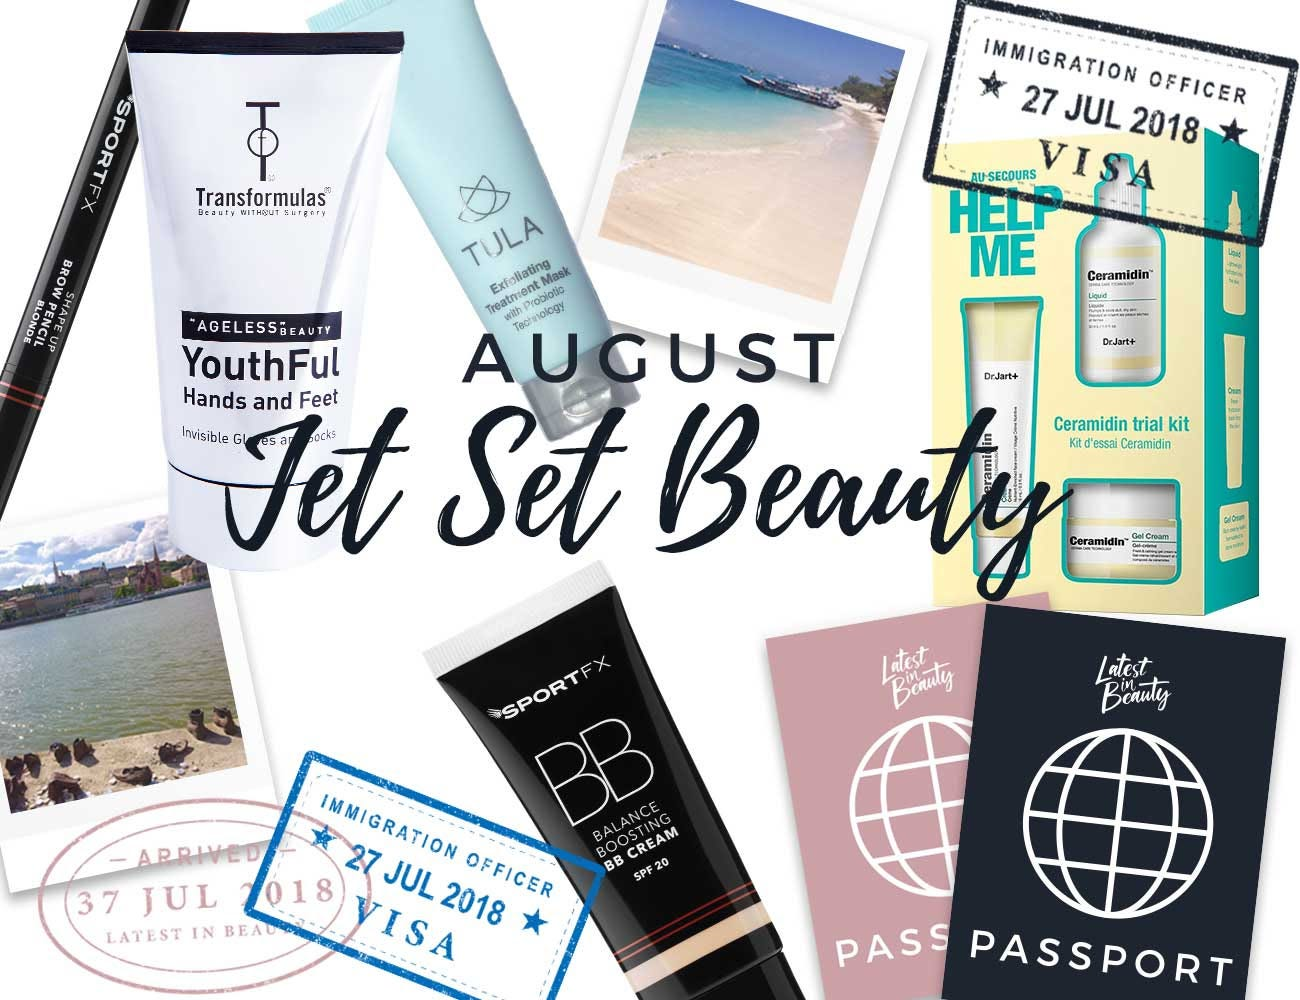 Latest-in-Beauty-August